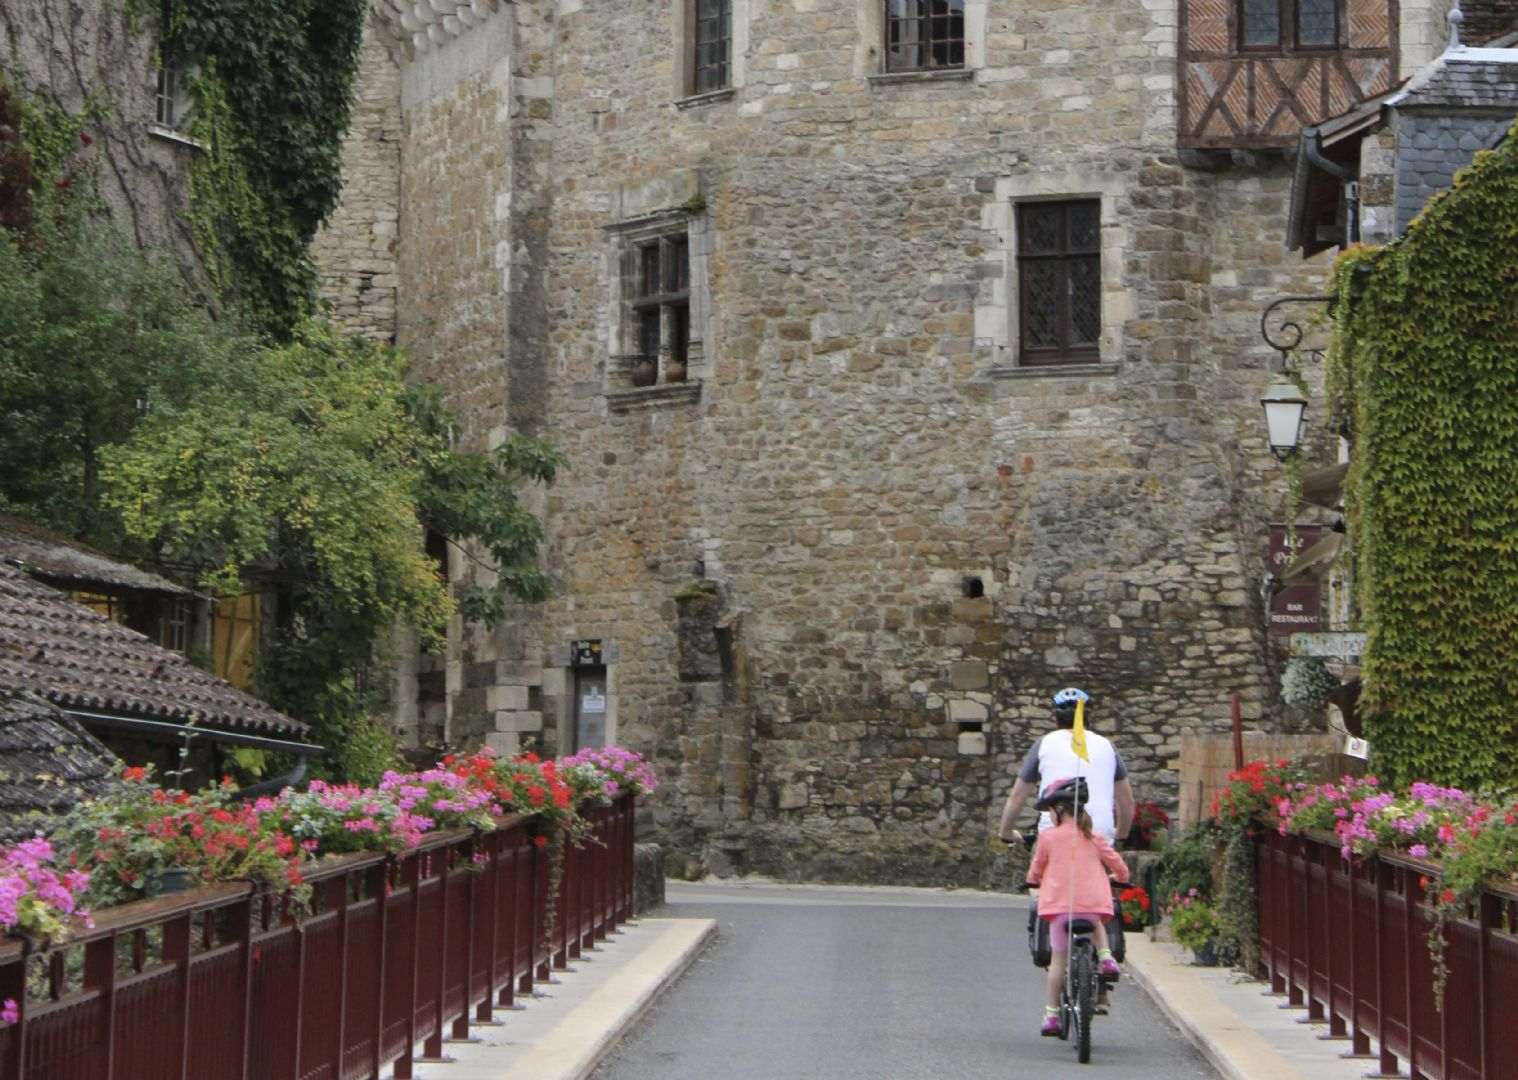 francefamilycycling7.jpg - France - Loire - Valley of Castles - Family Cycling